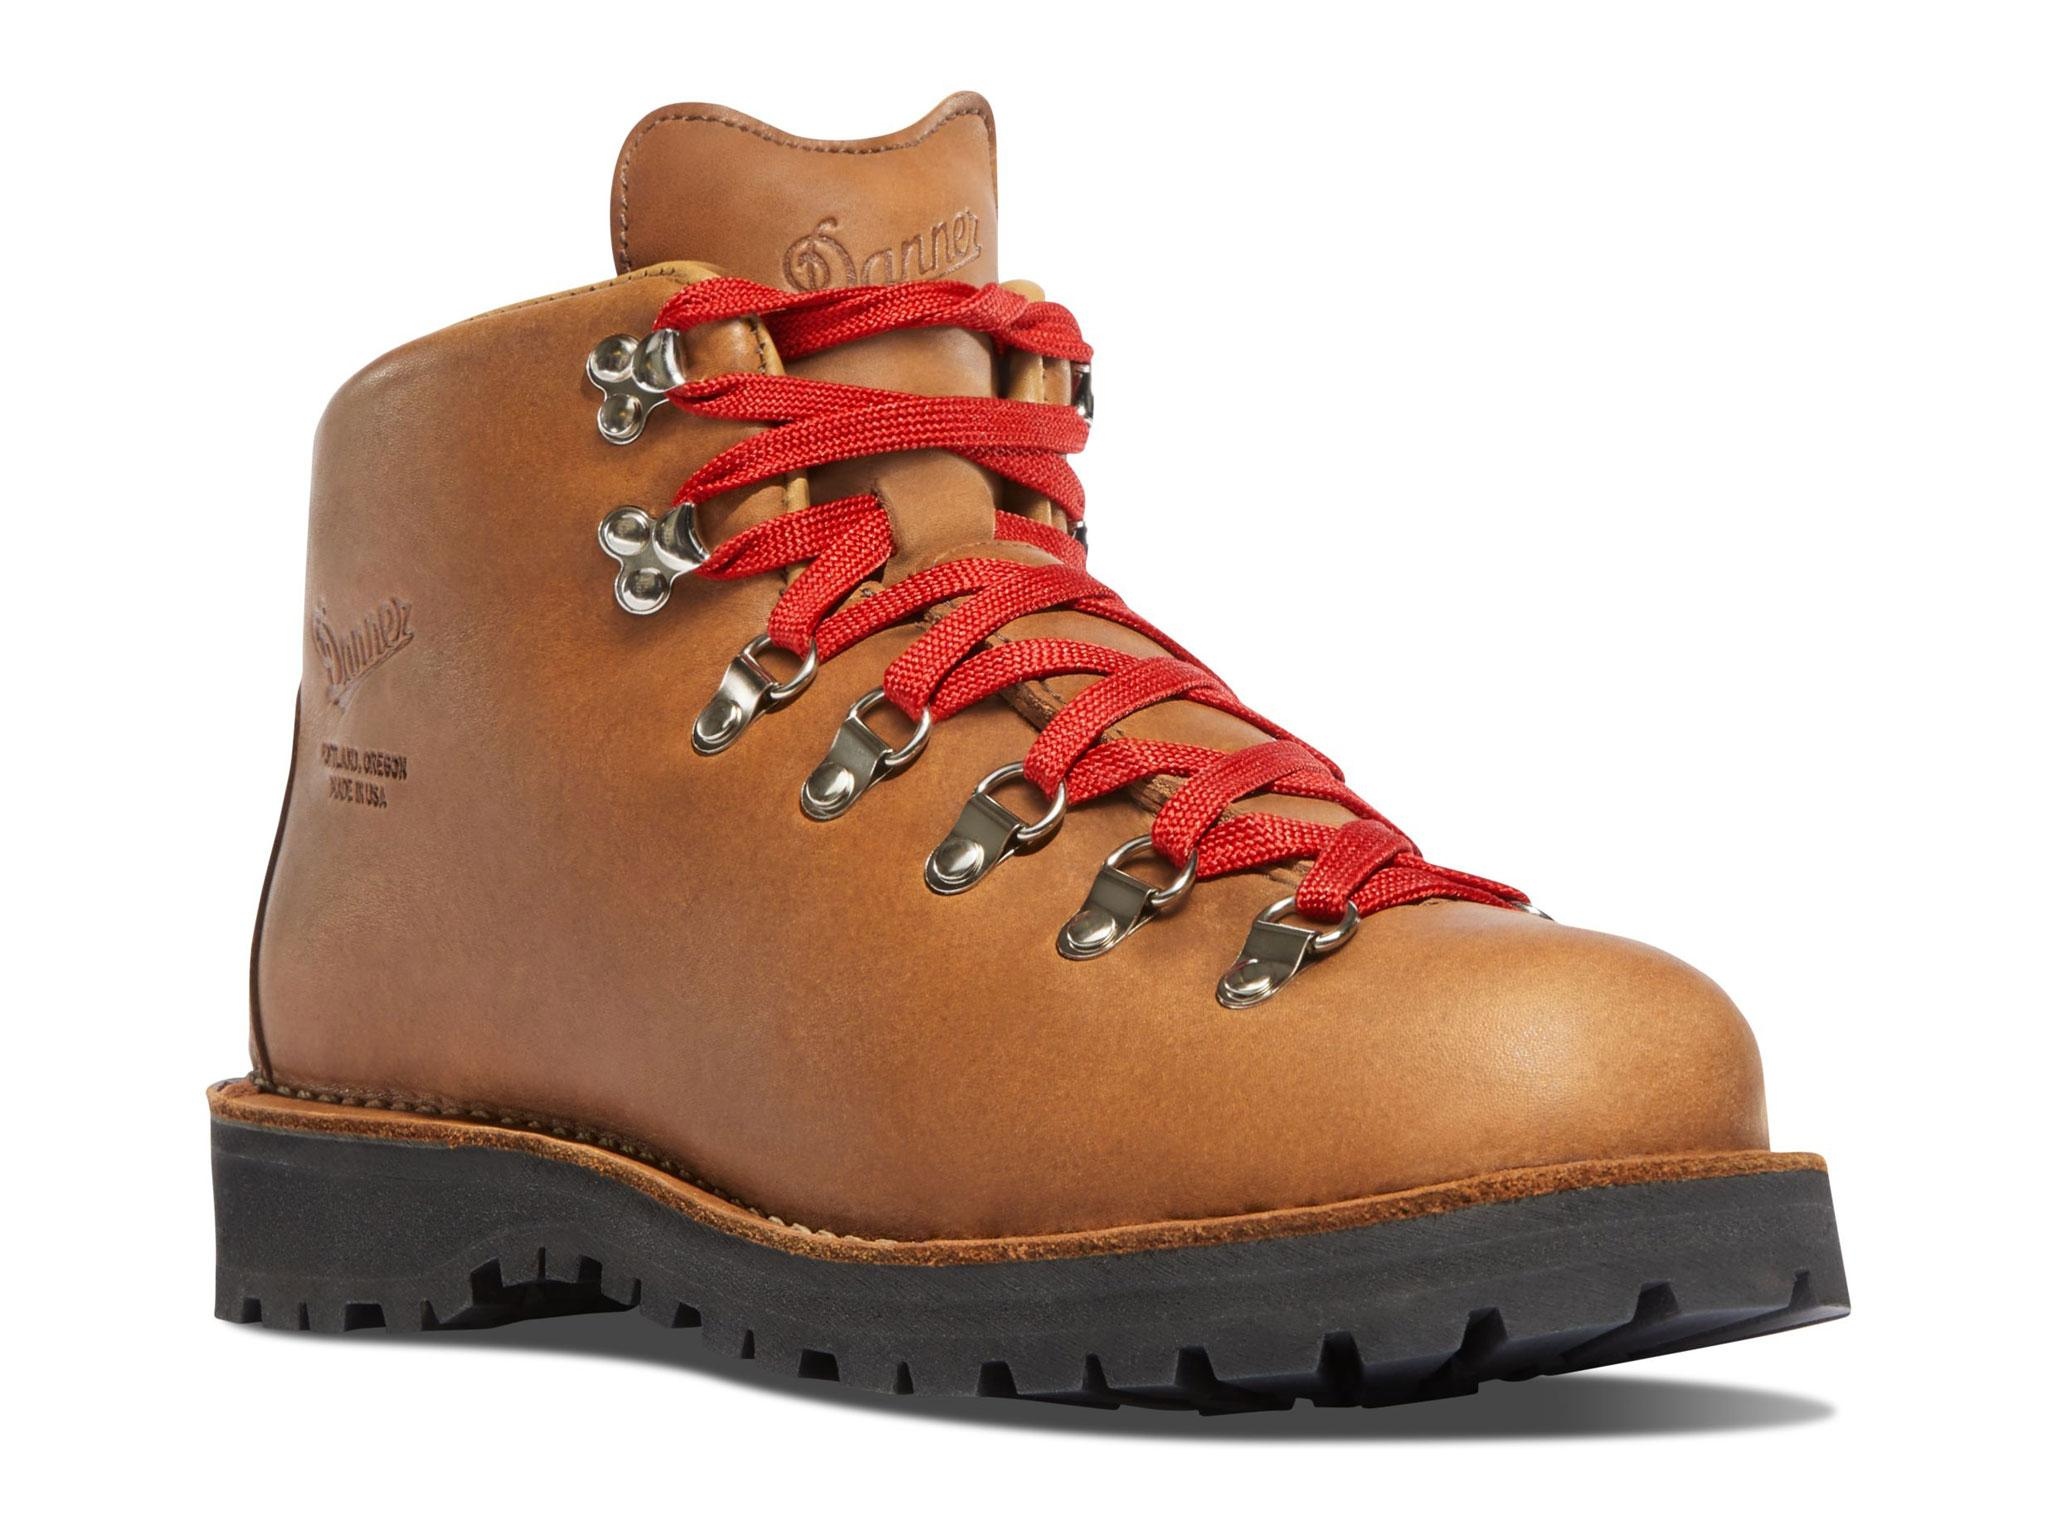 de9e2dc0e92 9 best men's hiking boots and shoes | The Independent